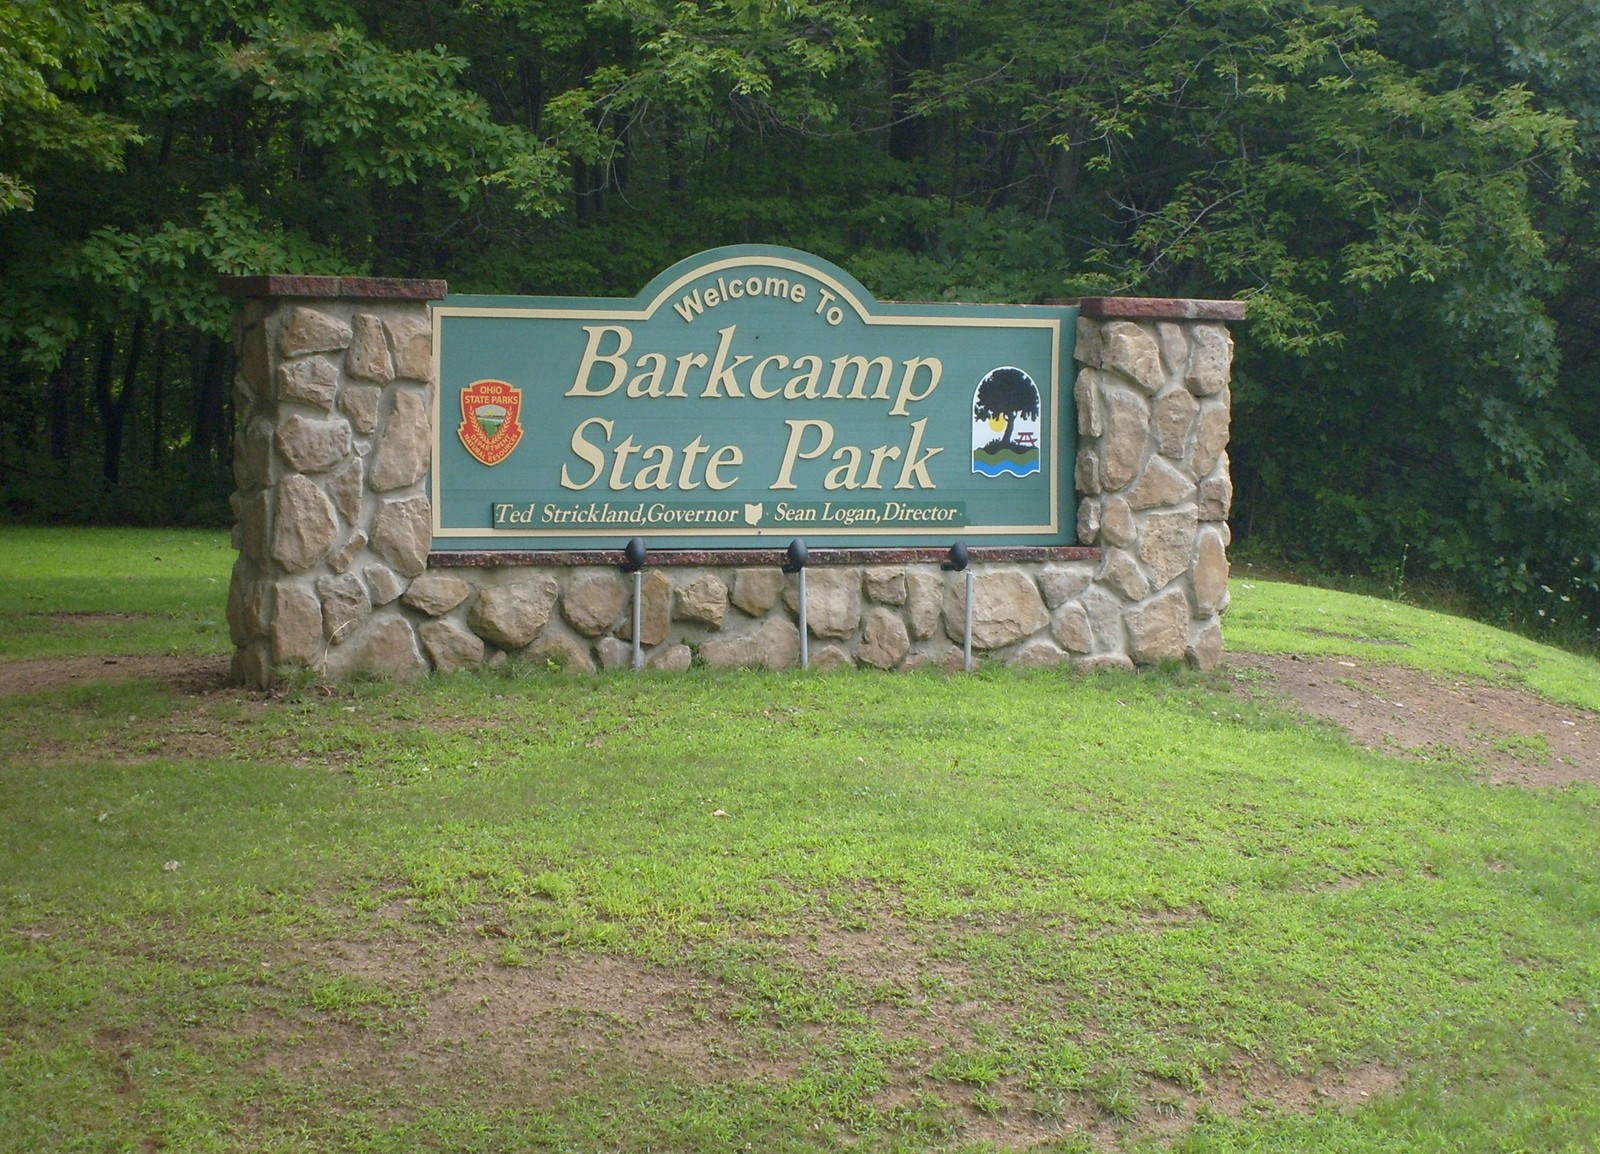 Click image for larger version  Name:Bakcamp 1.jpg Views:140 Size:632.8 KB ID:130492